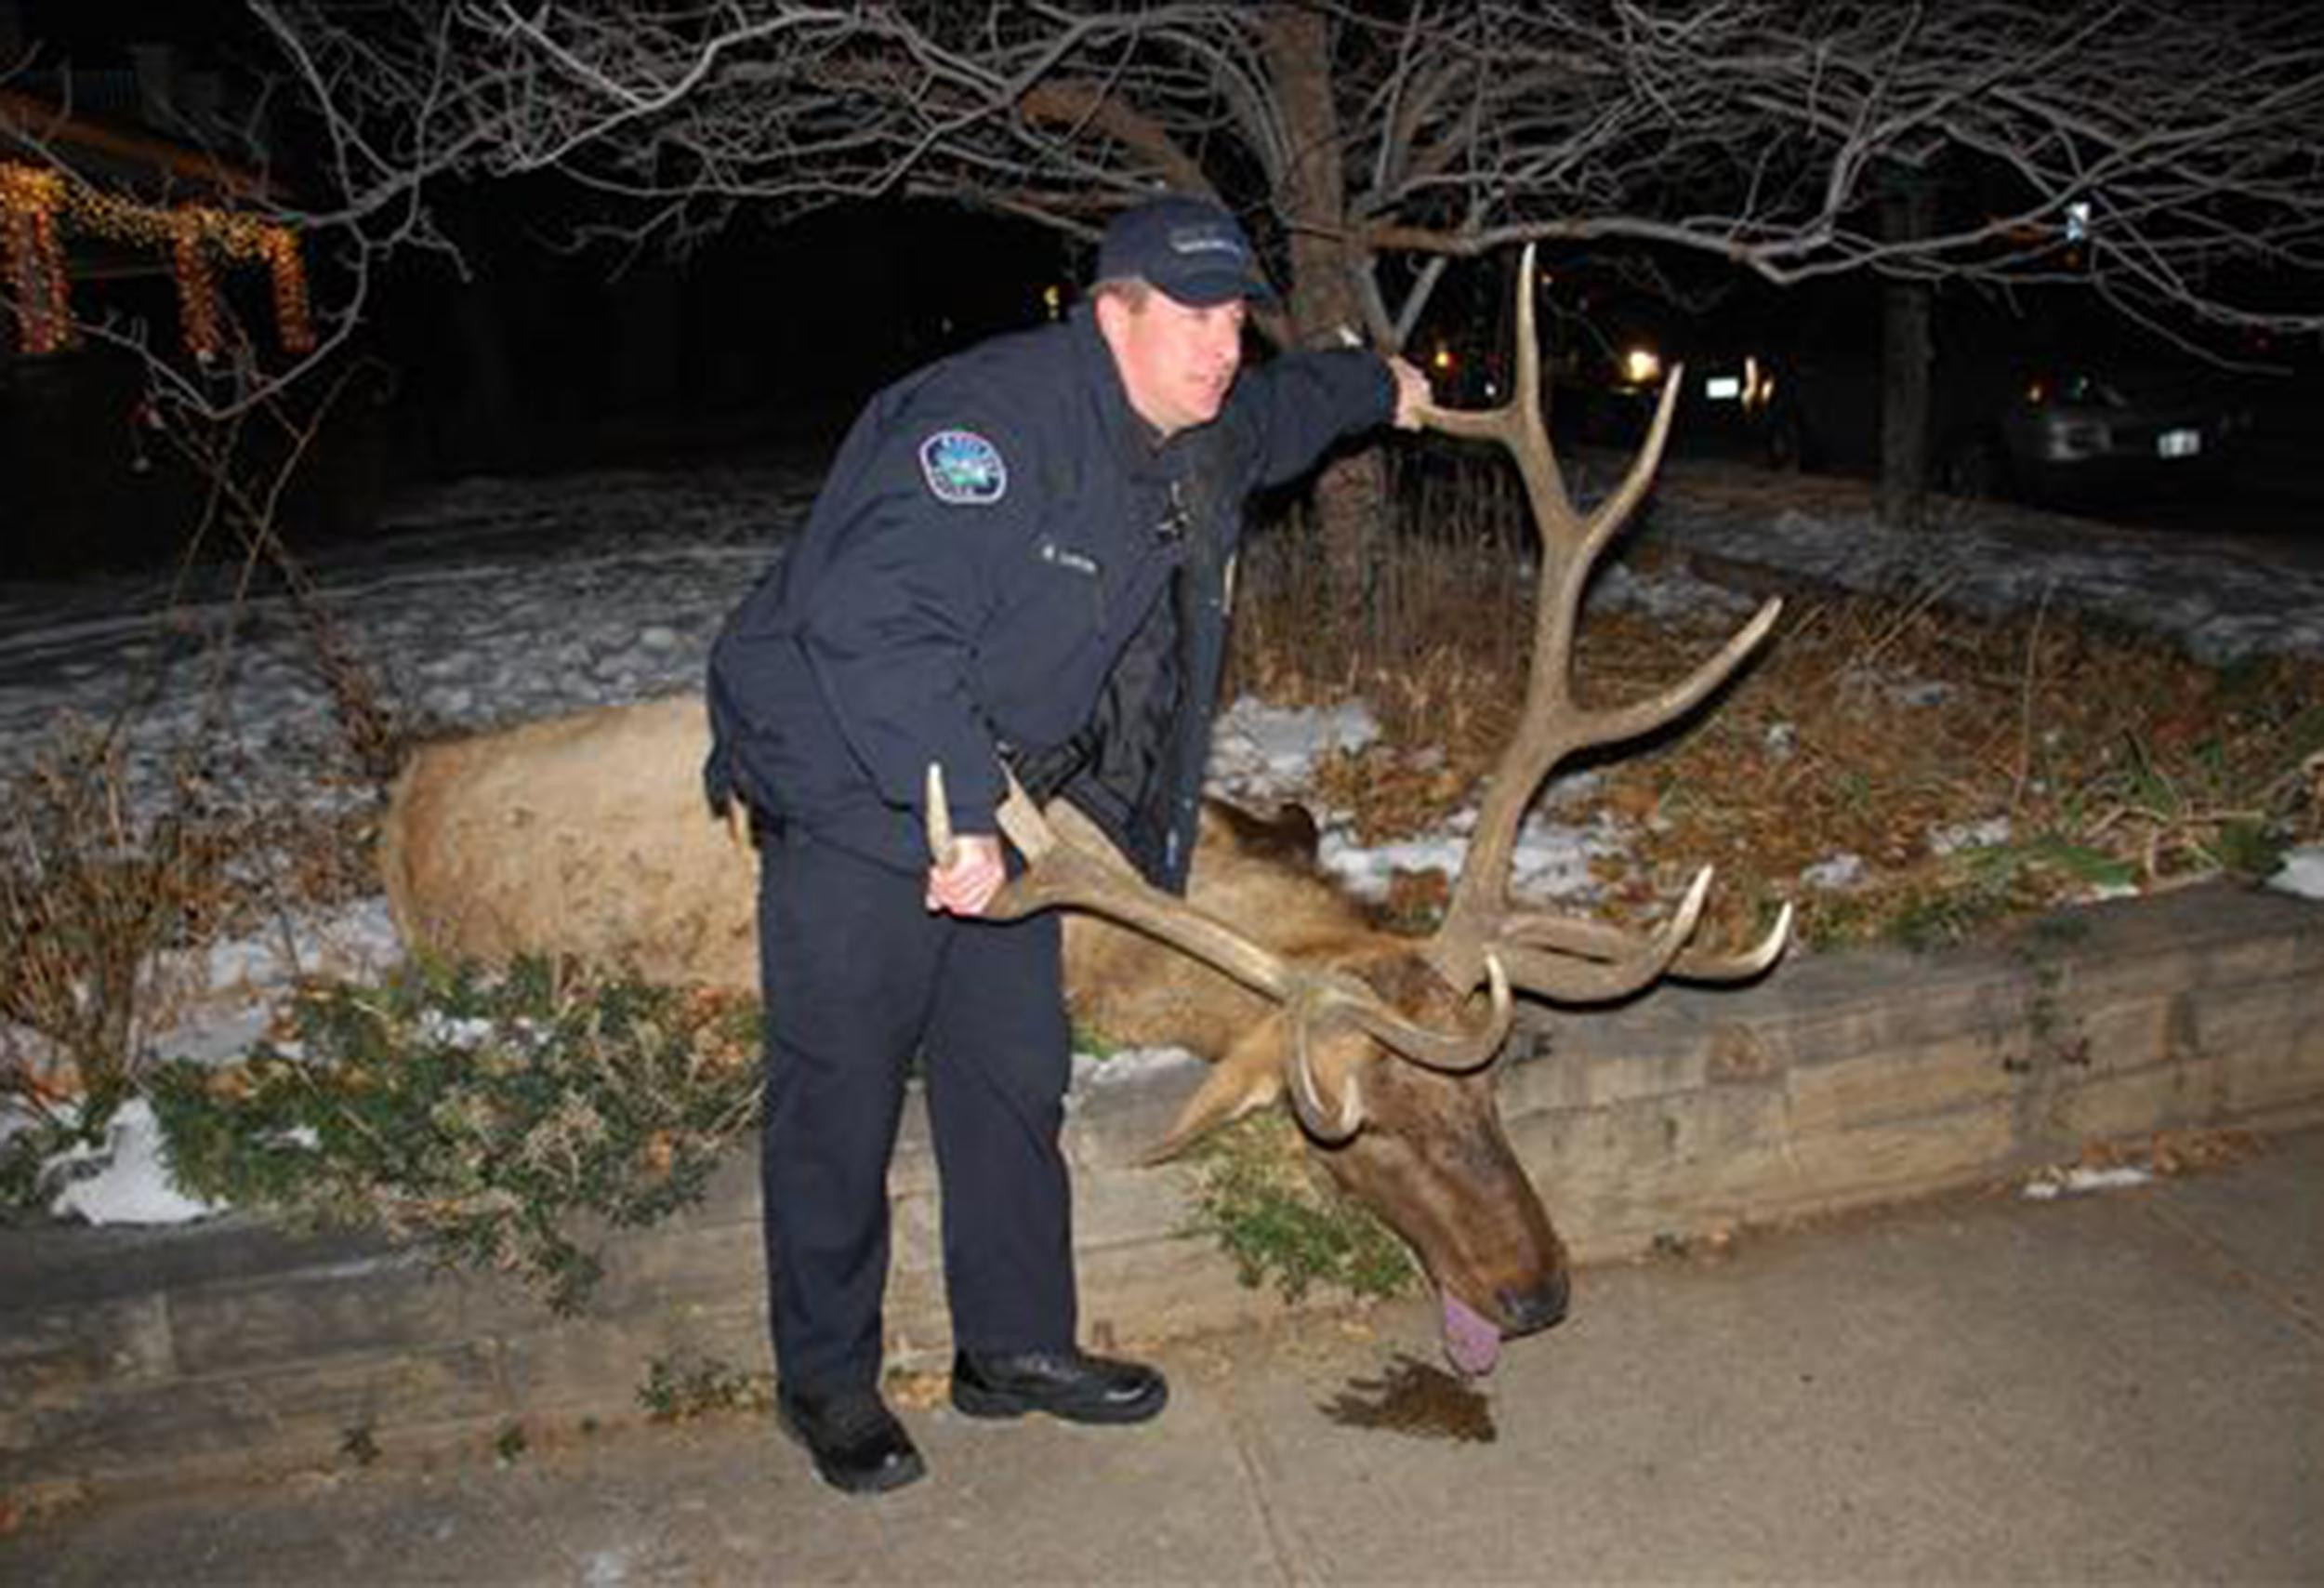 Image: A former Boulder police officer was found guilty Tuesday of illegally shooting and trying to cover up the death of a beloved neighborhood elk nicknamed